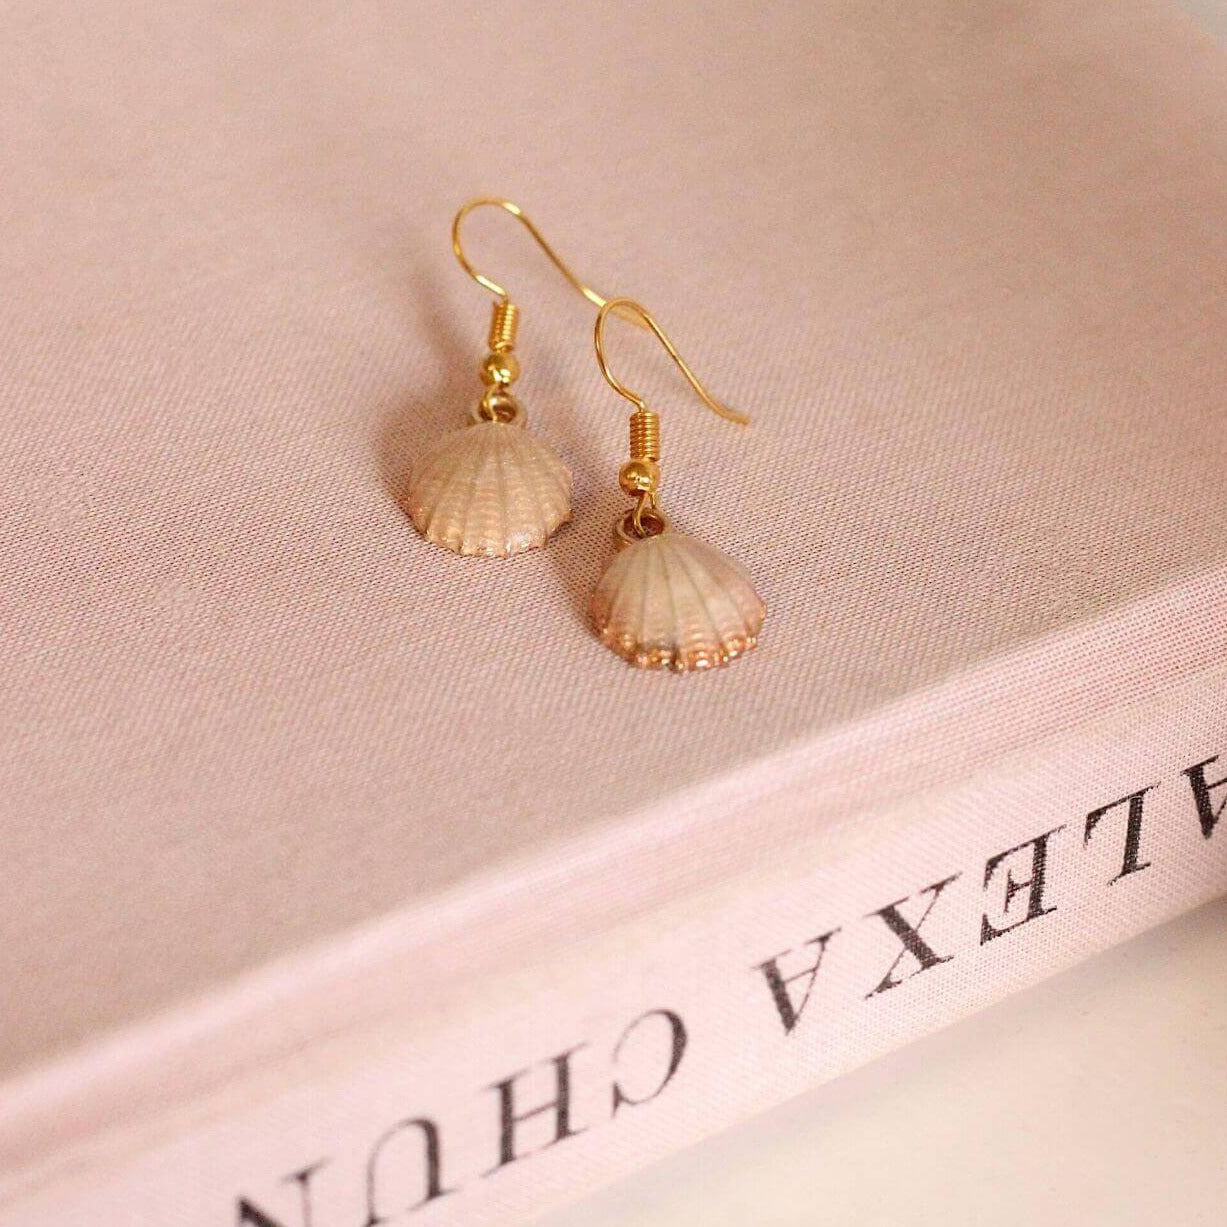 Pair Of Peaches - The Shellie Earring